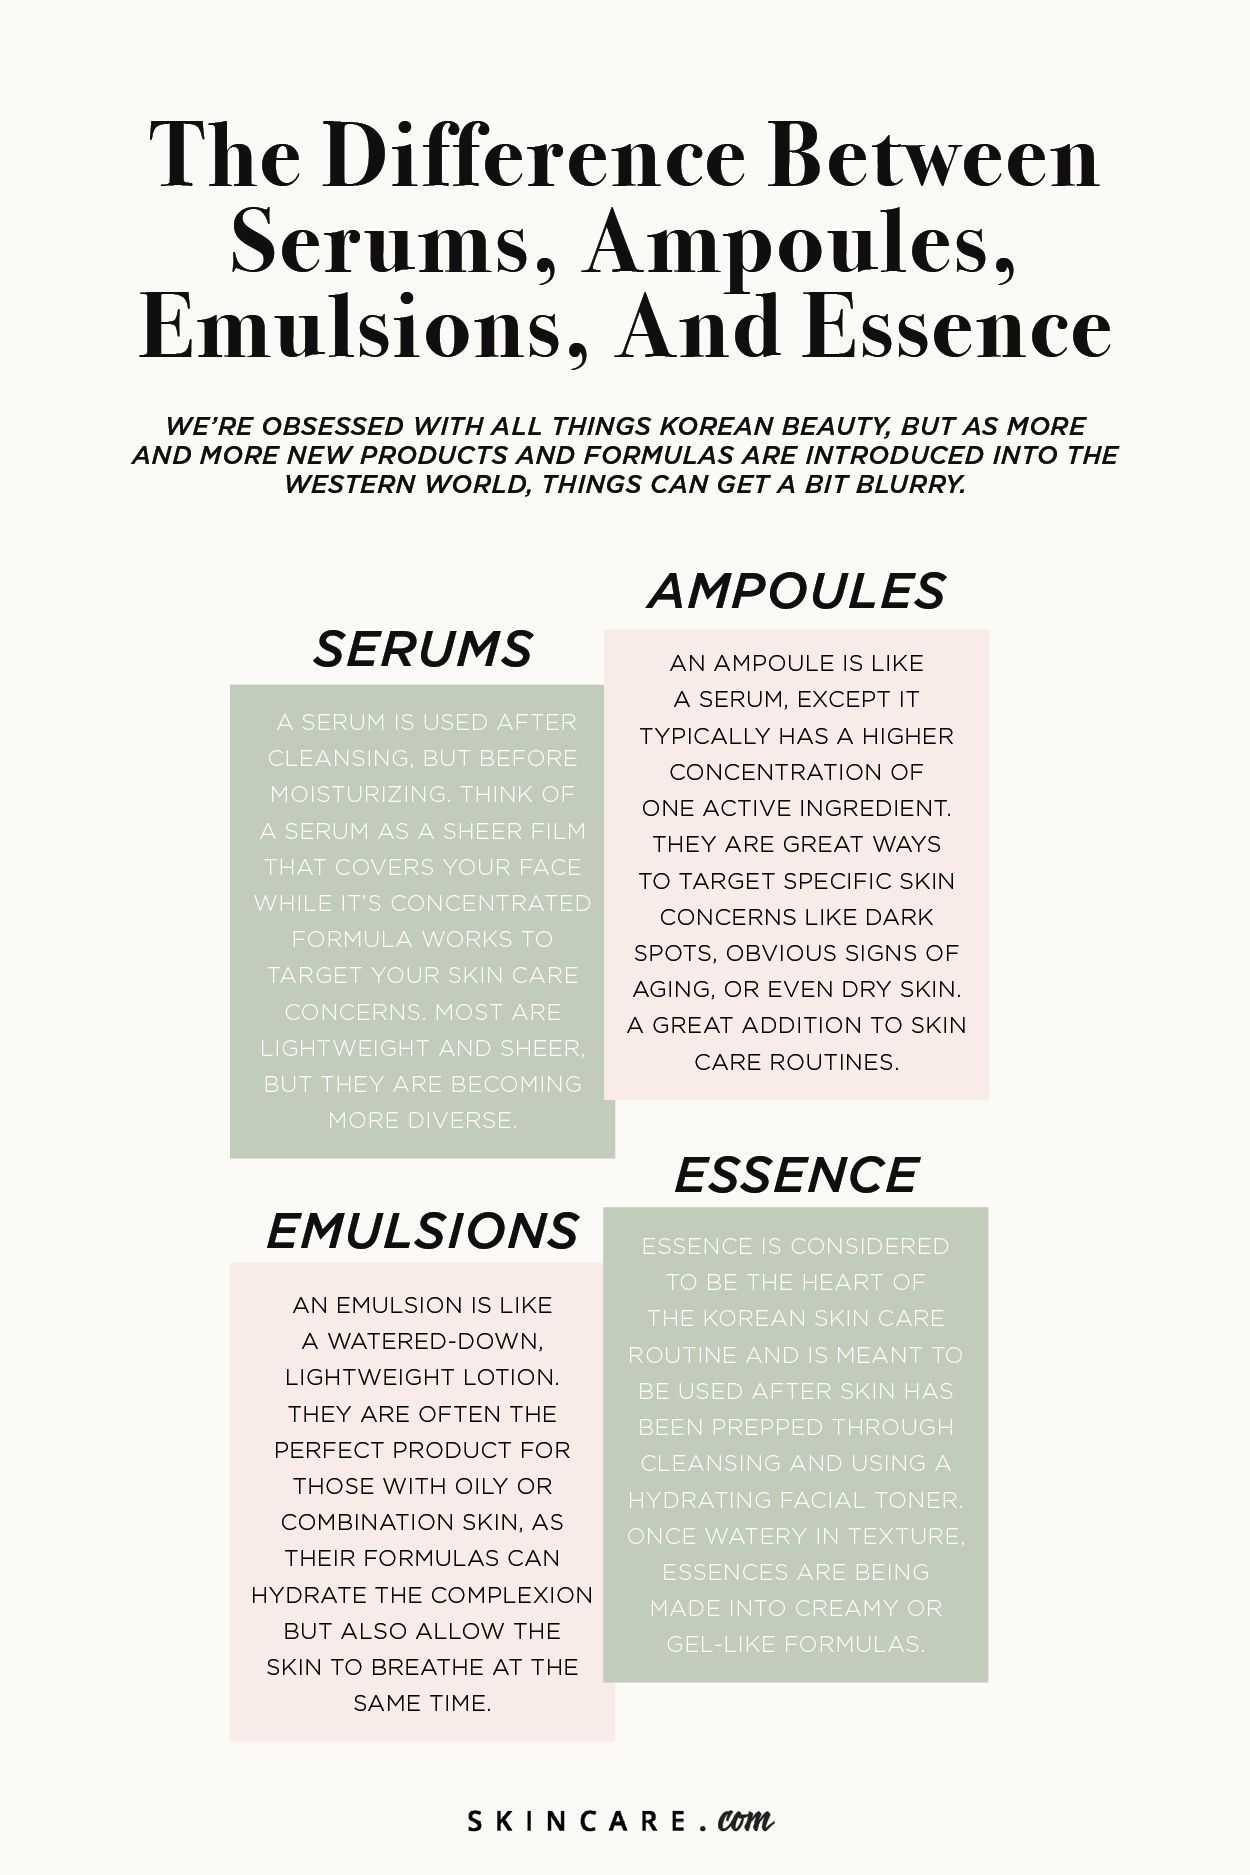 Do You Know The Difference Between All Staple K Beauty Products Between Serums Ampoules Emulsions And Esse Skin Care Regimen Skin Care Routine 40s Skin Care